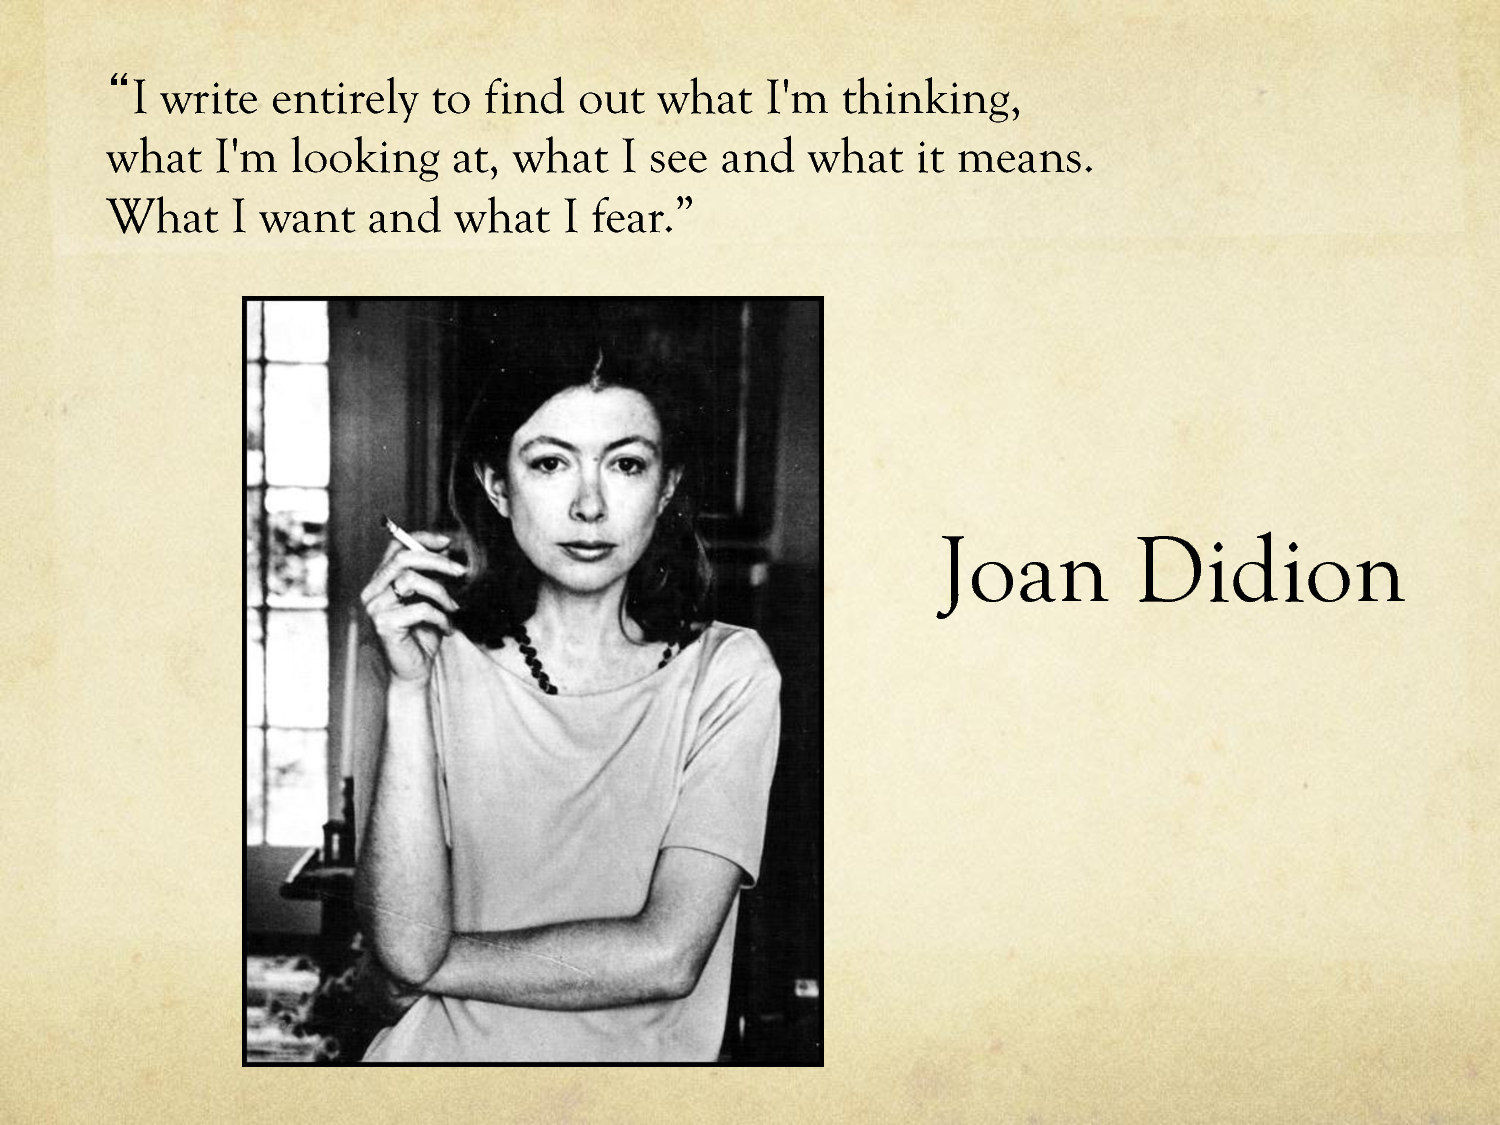 008 Essay Example Joan Didion Singular Essays Collections On Santa Ana Winds Amazon Full